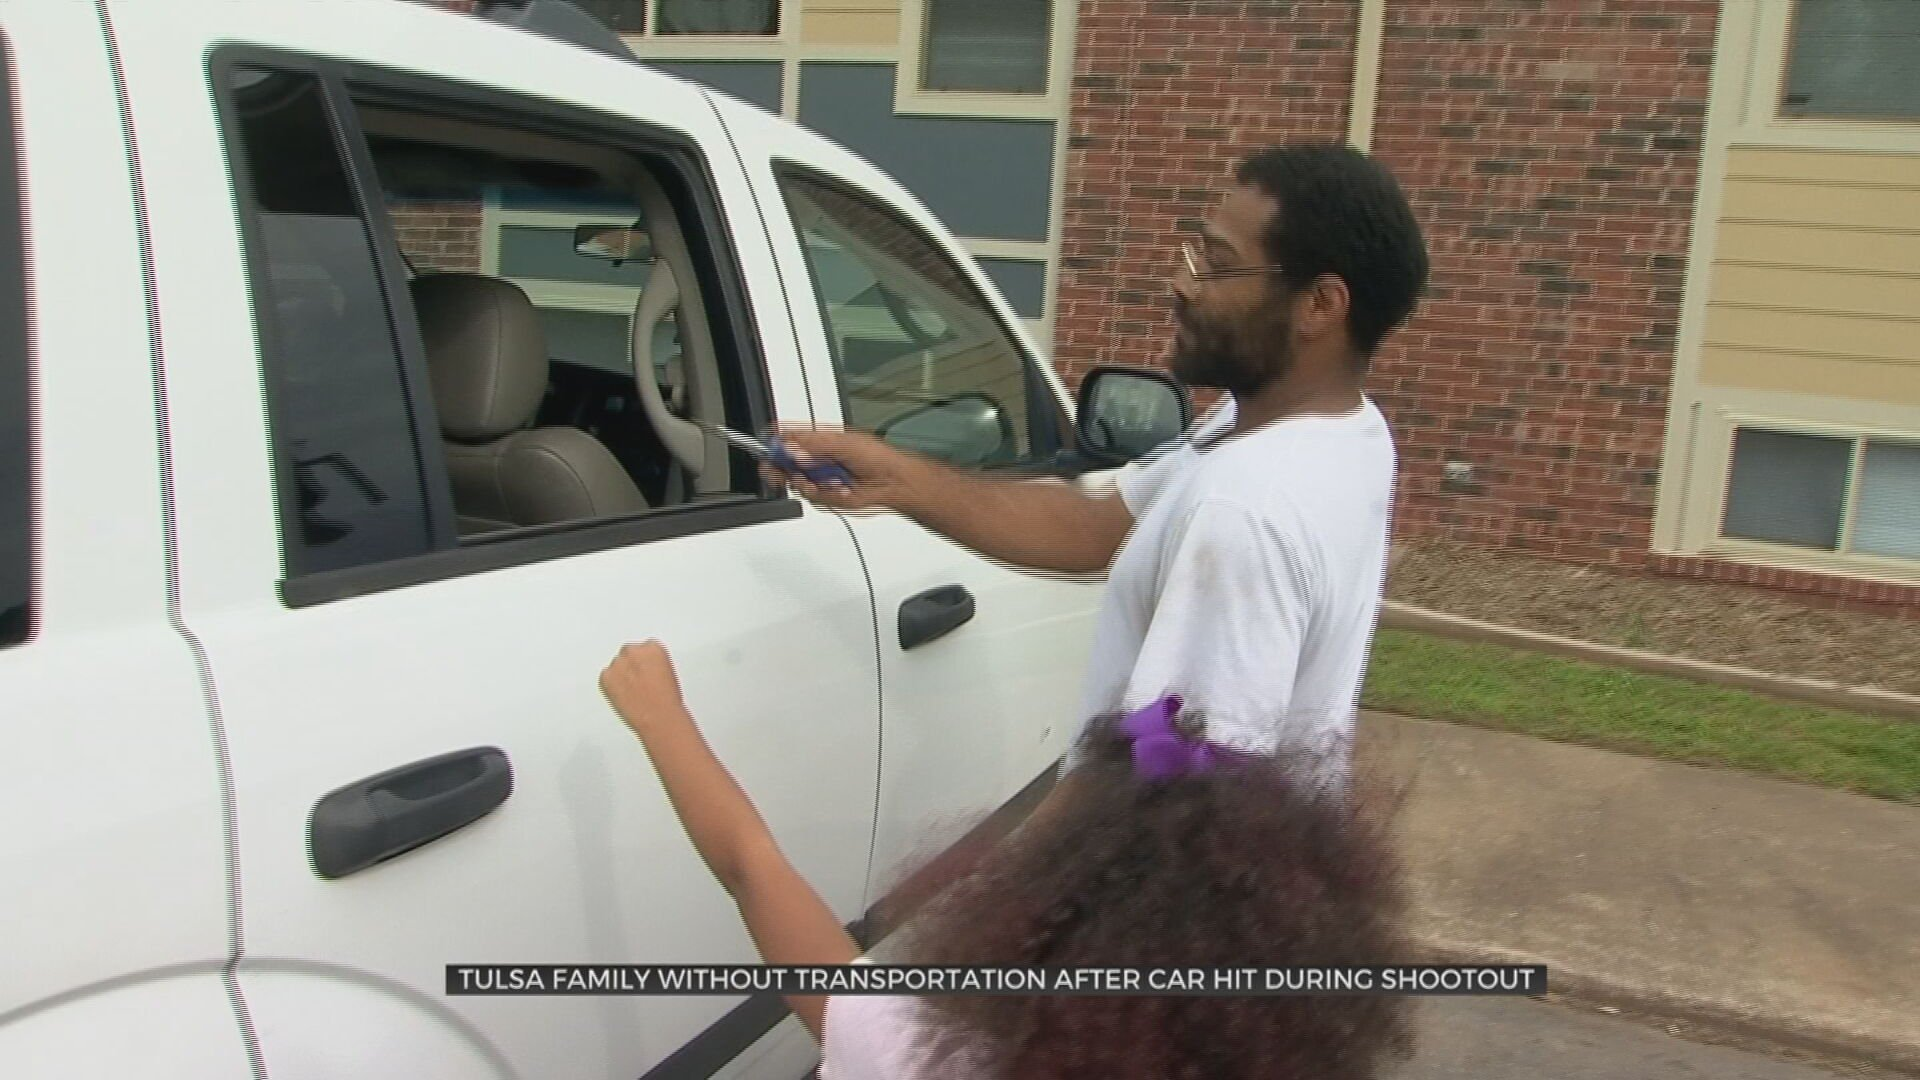 Tulsa Family Without Transportation After Car Destroyed In Crossfire From Shootout